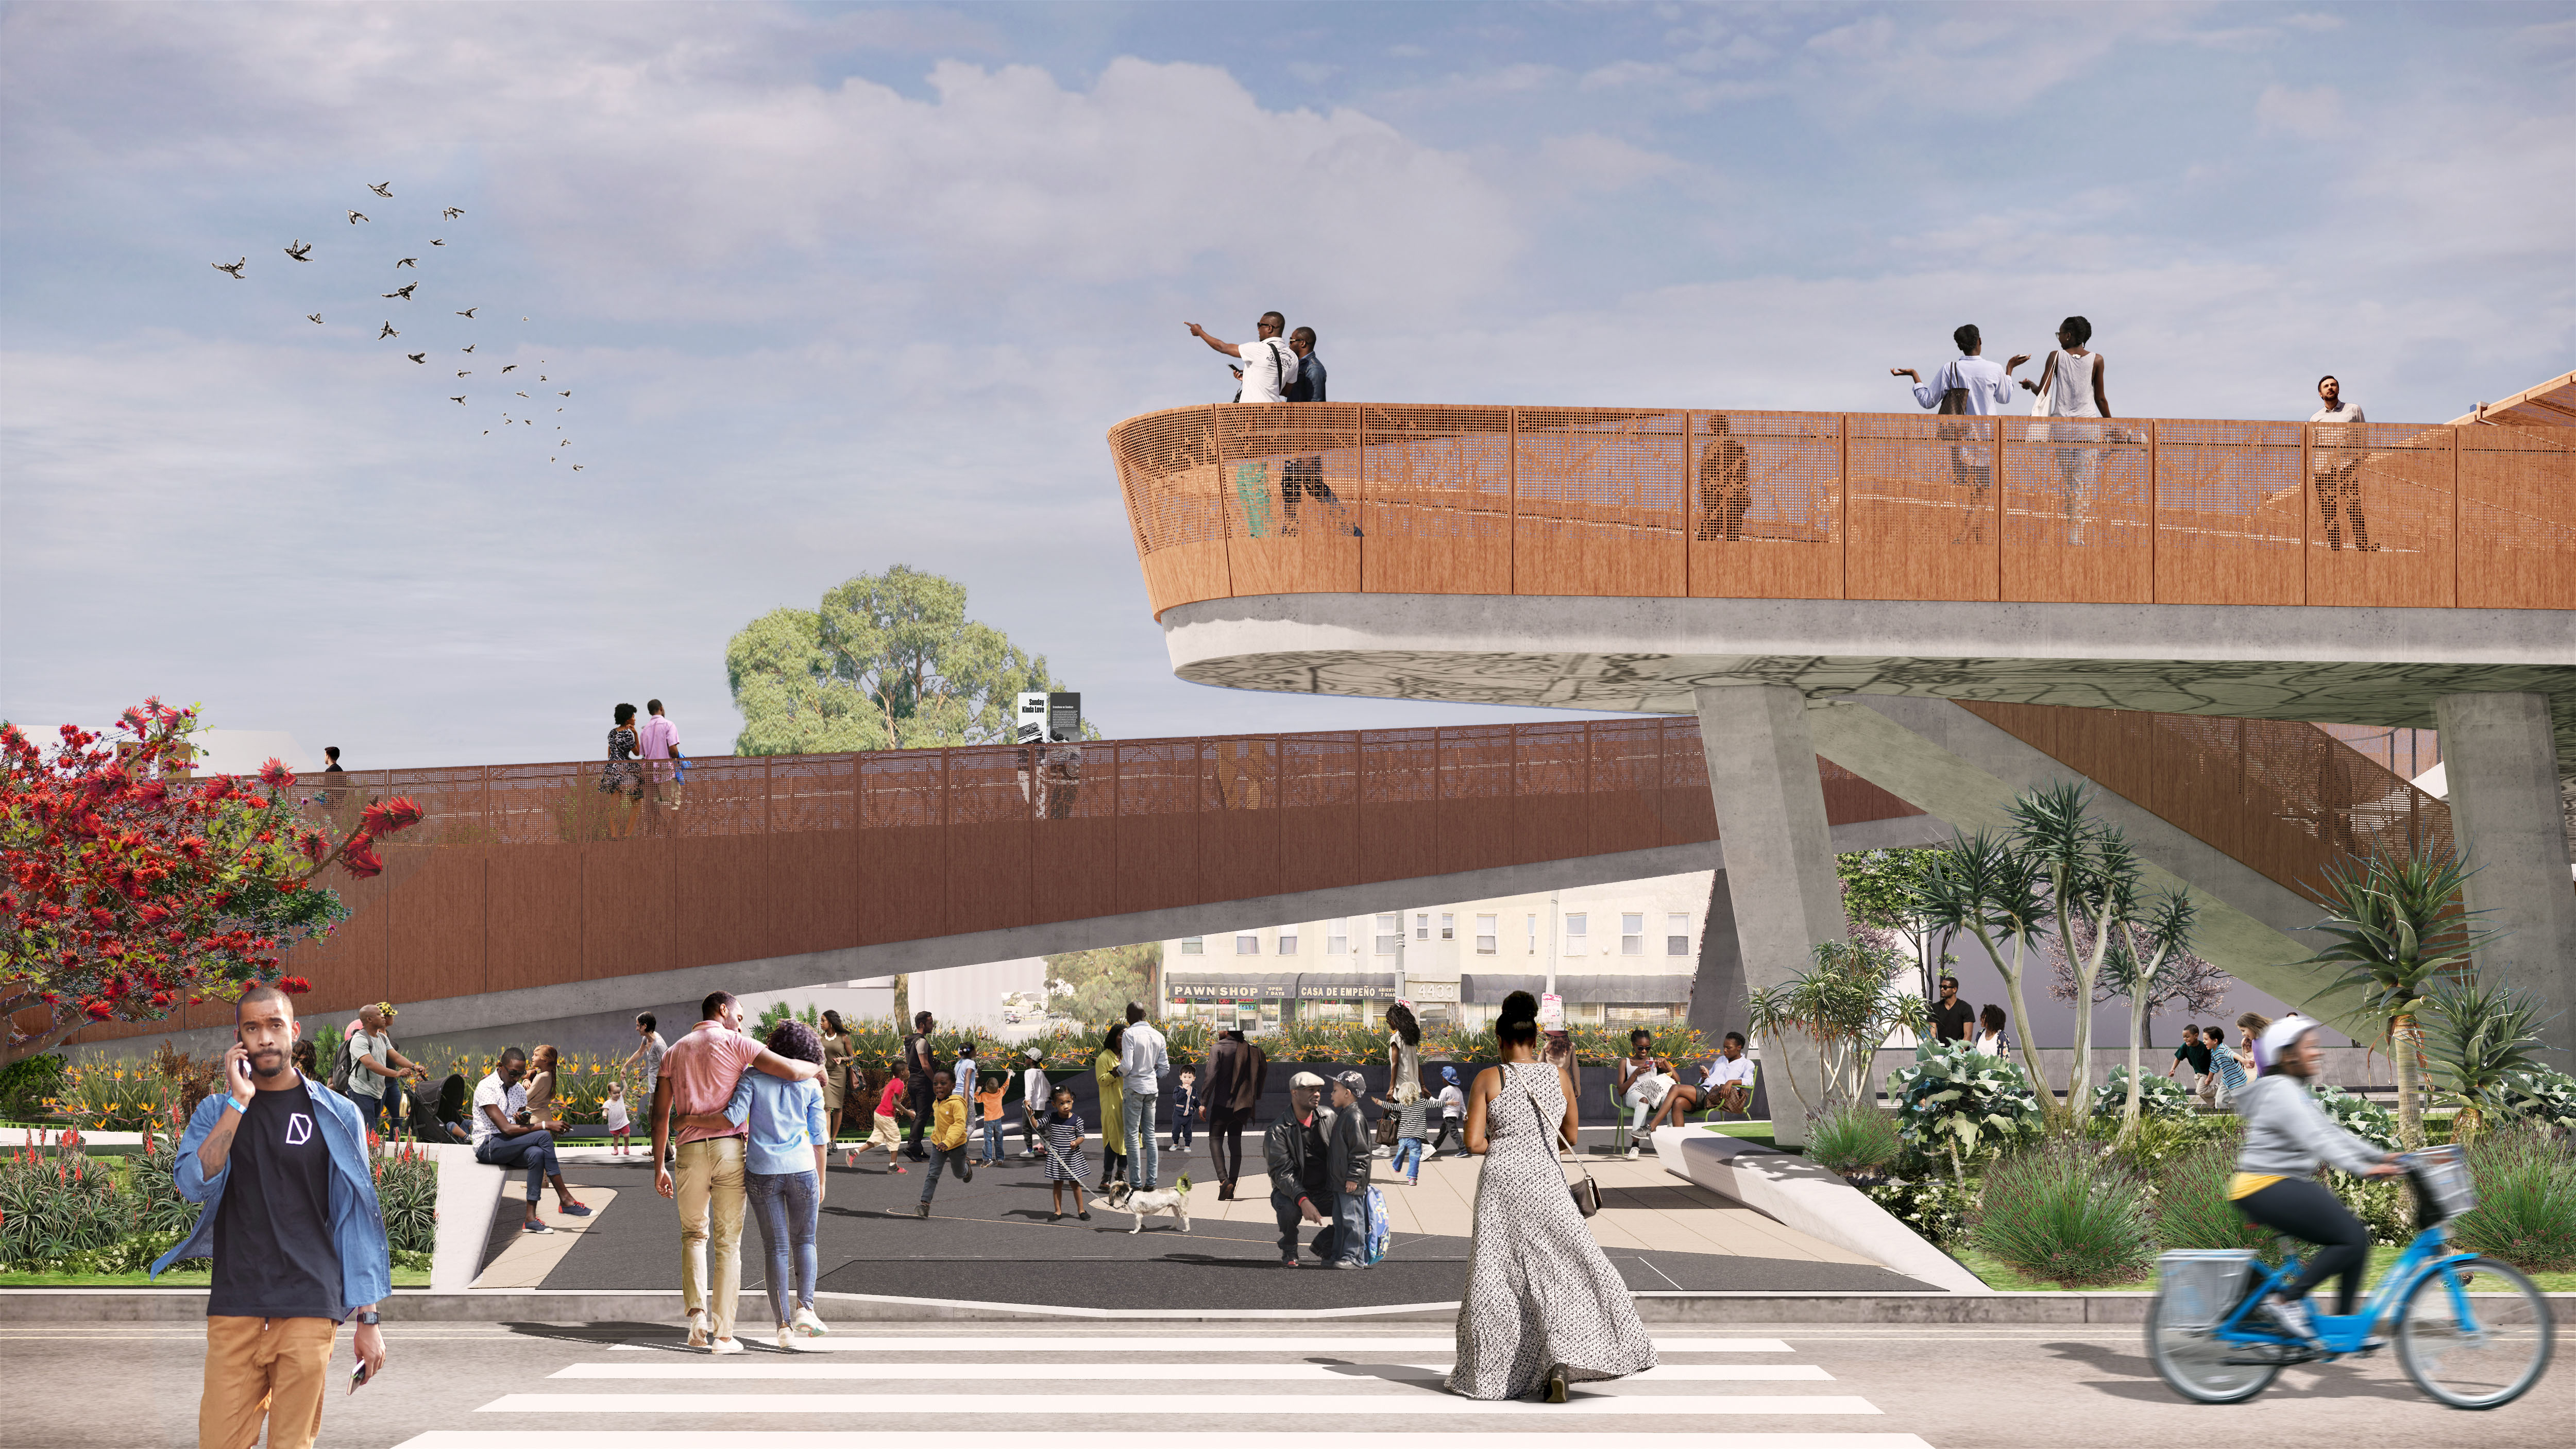 The vista from Sankofa Park, at the north end of Destination Crenshaw, will offer an opportunity to contemplate the entirety of the community's journey. Rendering: Perkins+Will